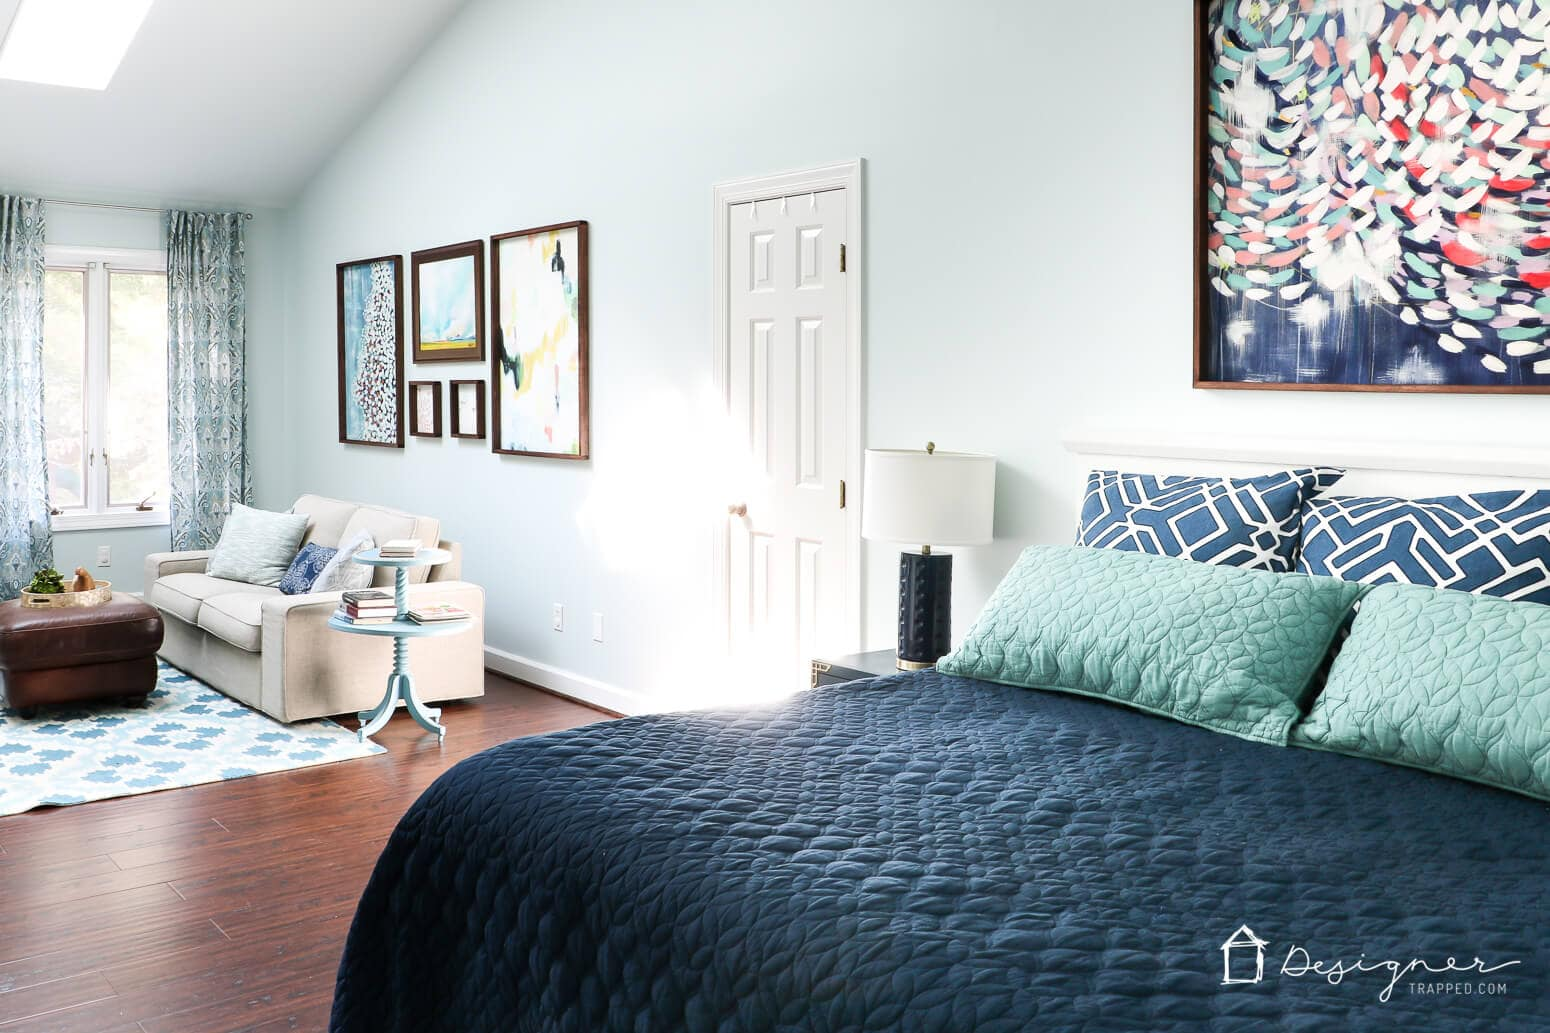 After 4 years of blank walls in our master bedroom, we have added art to the walls and OH WHAT A DIFFERENCE it has made! Check out the transformation for yourself.